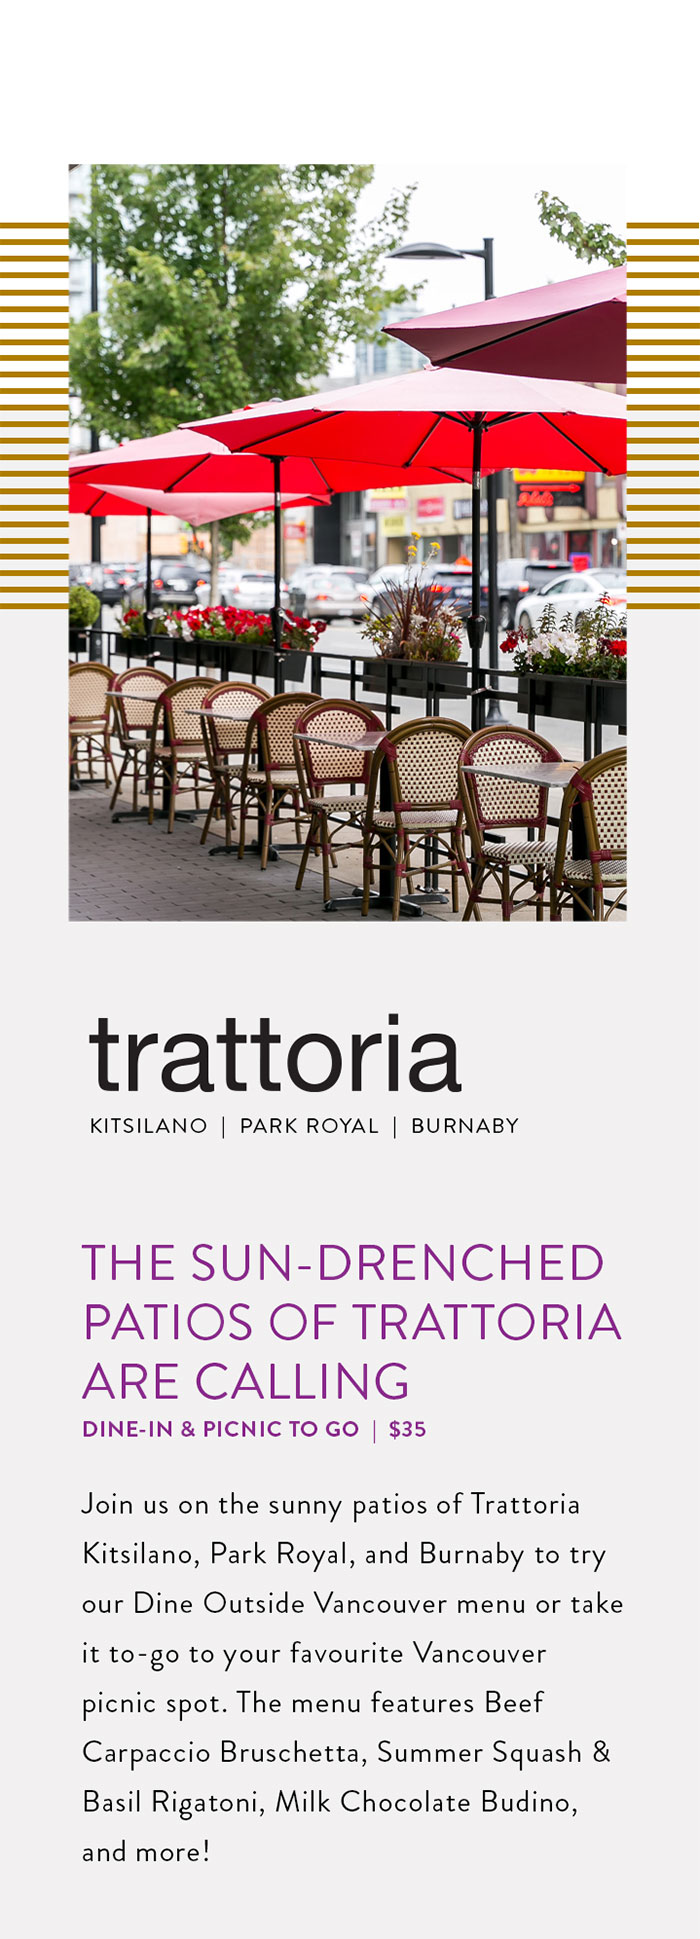 Join us on the sunny patios of Trattoria Kitsilano, Park Royal, and Burnaby to try our Dine Outside Vancouver menu or take it to-go to your favourite Vancouver picnic spot. The menu features Beef Carpaccio Bruschetta, Summer Squash & Basil Rigatoni, Milk Chocolate Budino, and more!